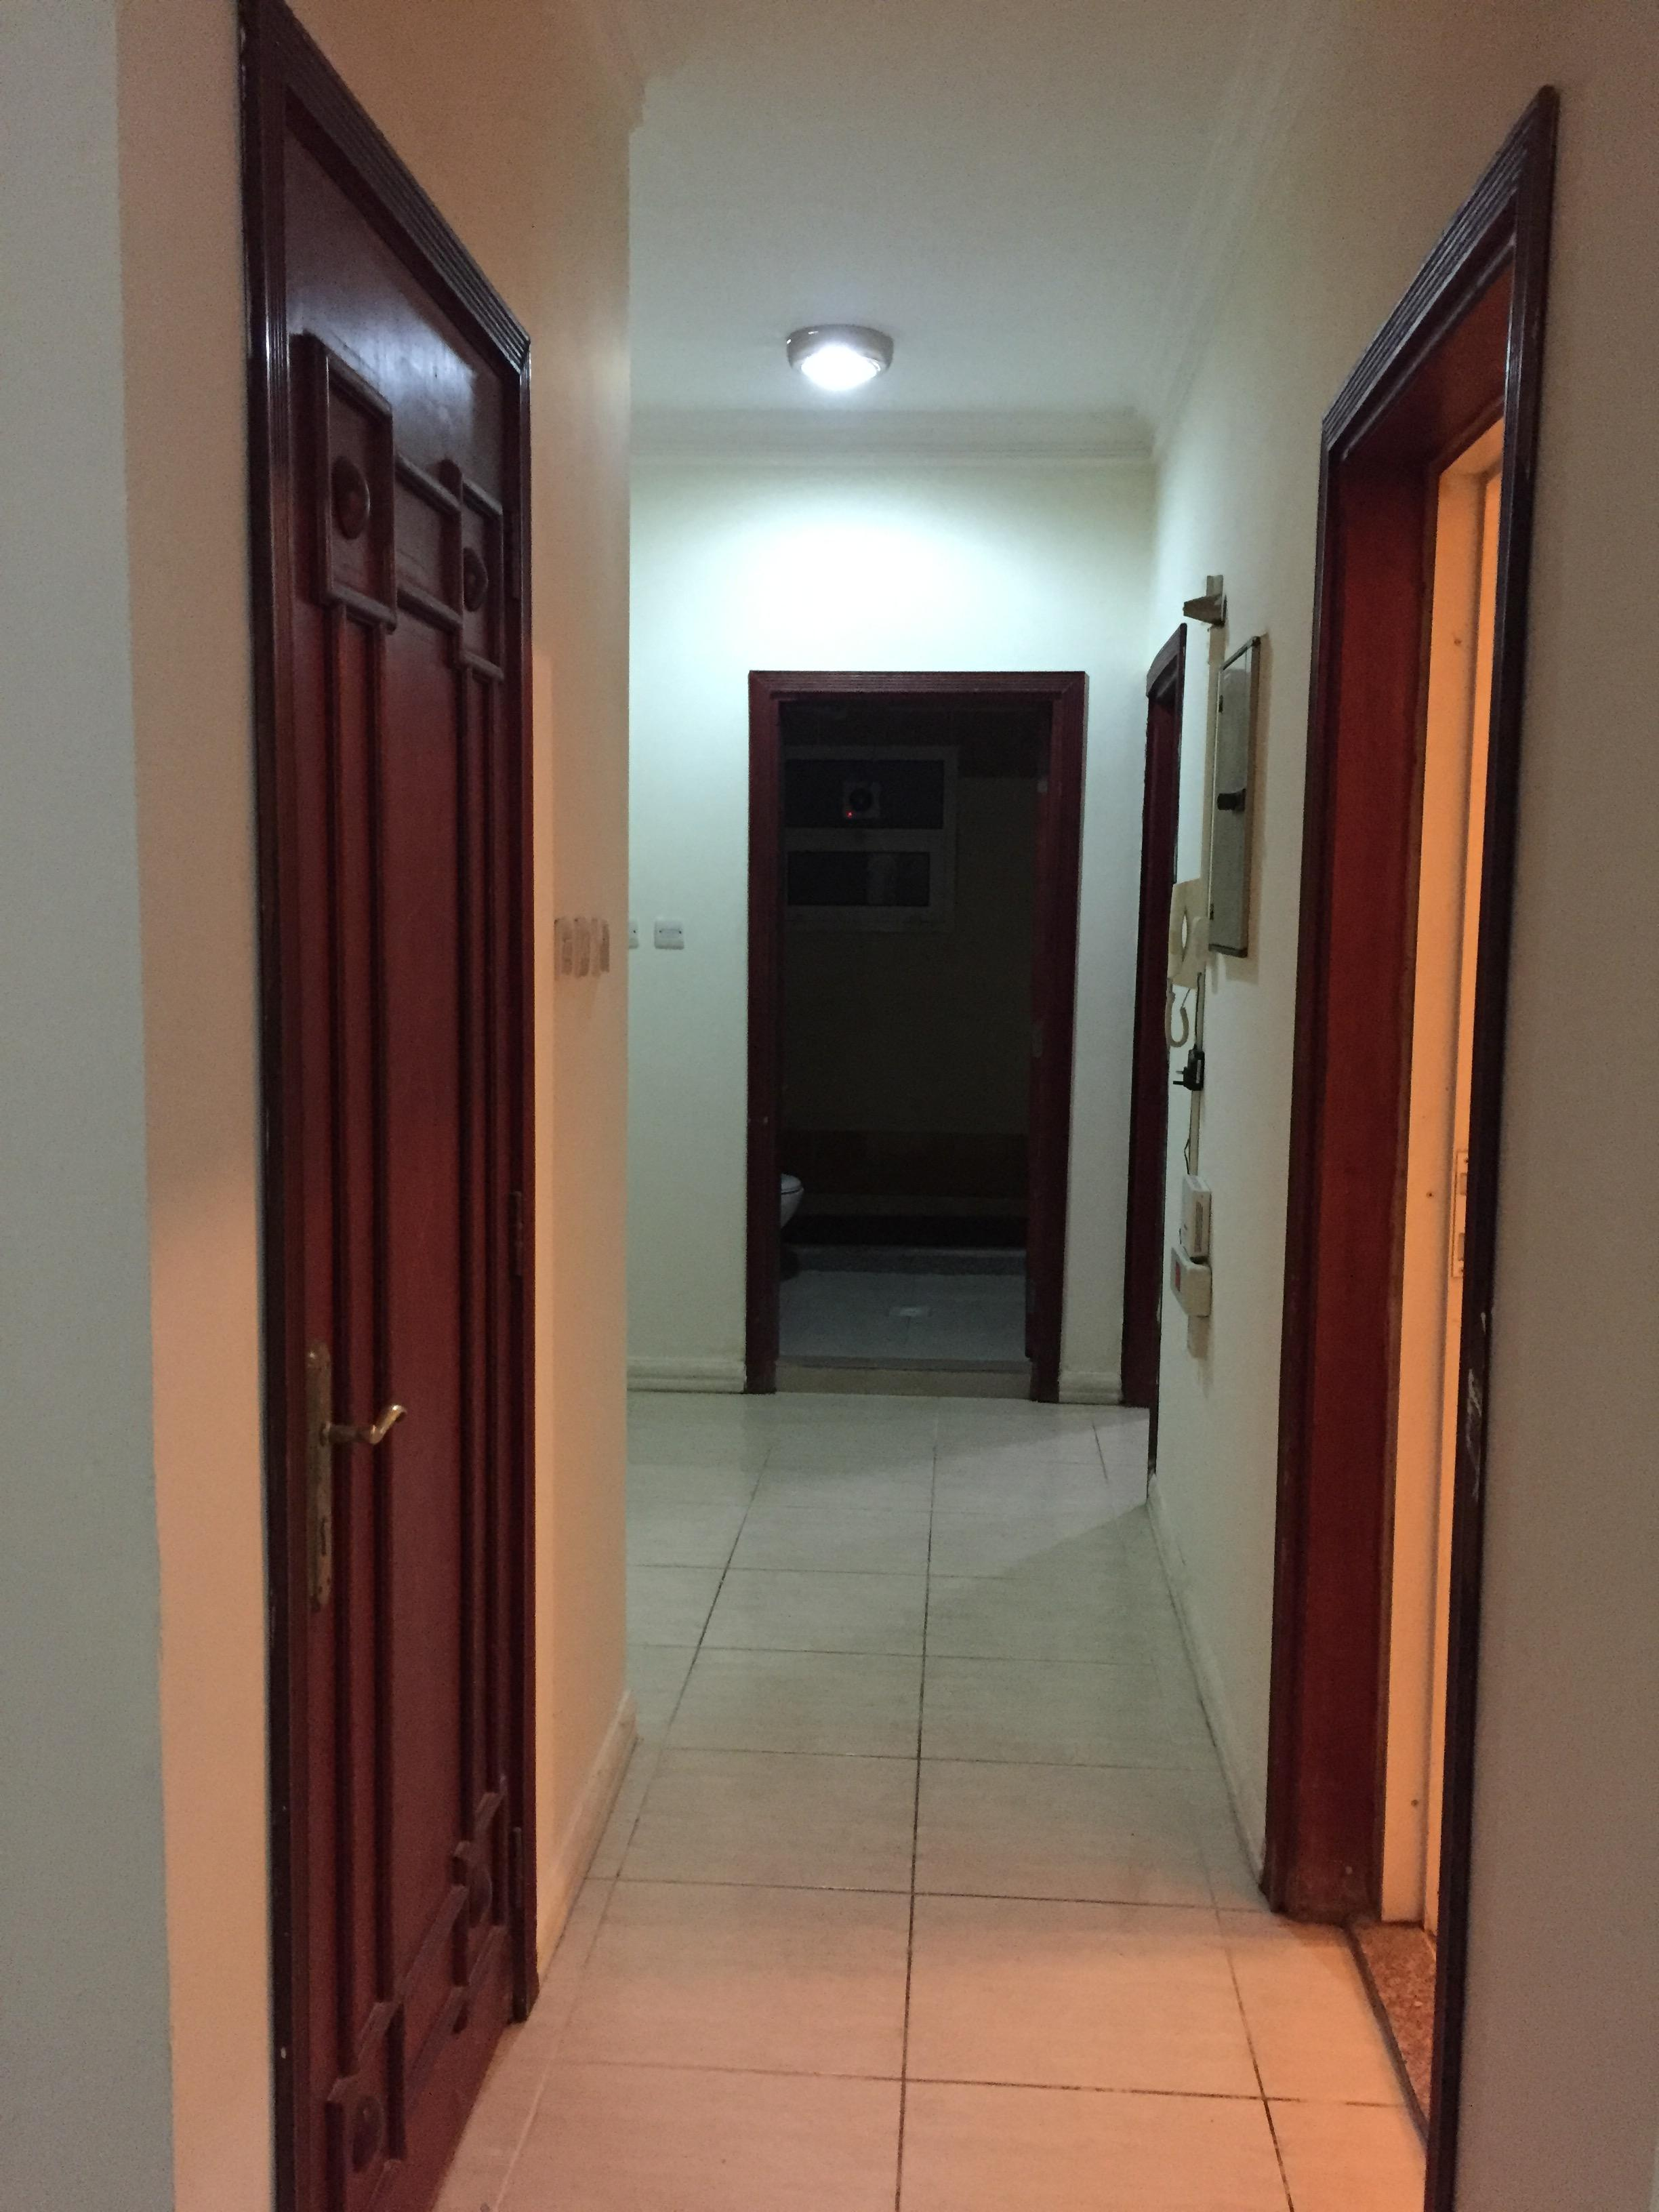 room for rent near al meera mansoura qatar living rh qatarliving com qatar living room for rent qatar living room for rent mansoura